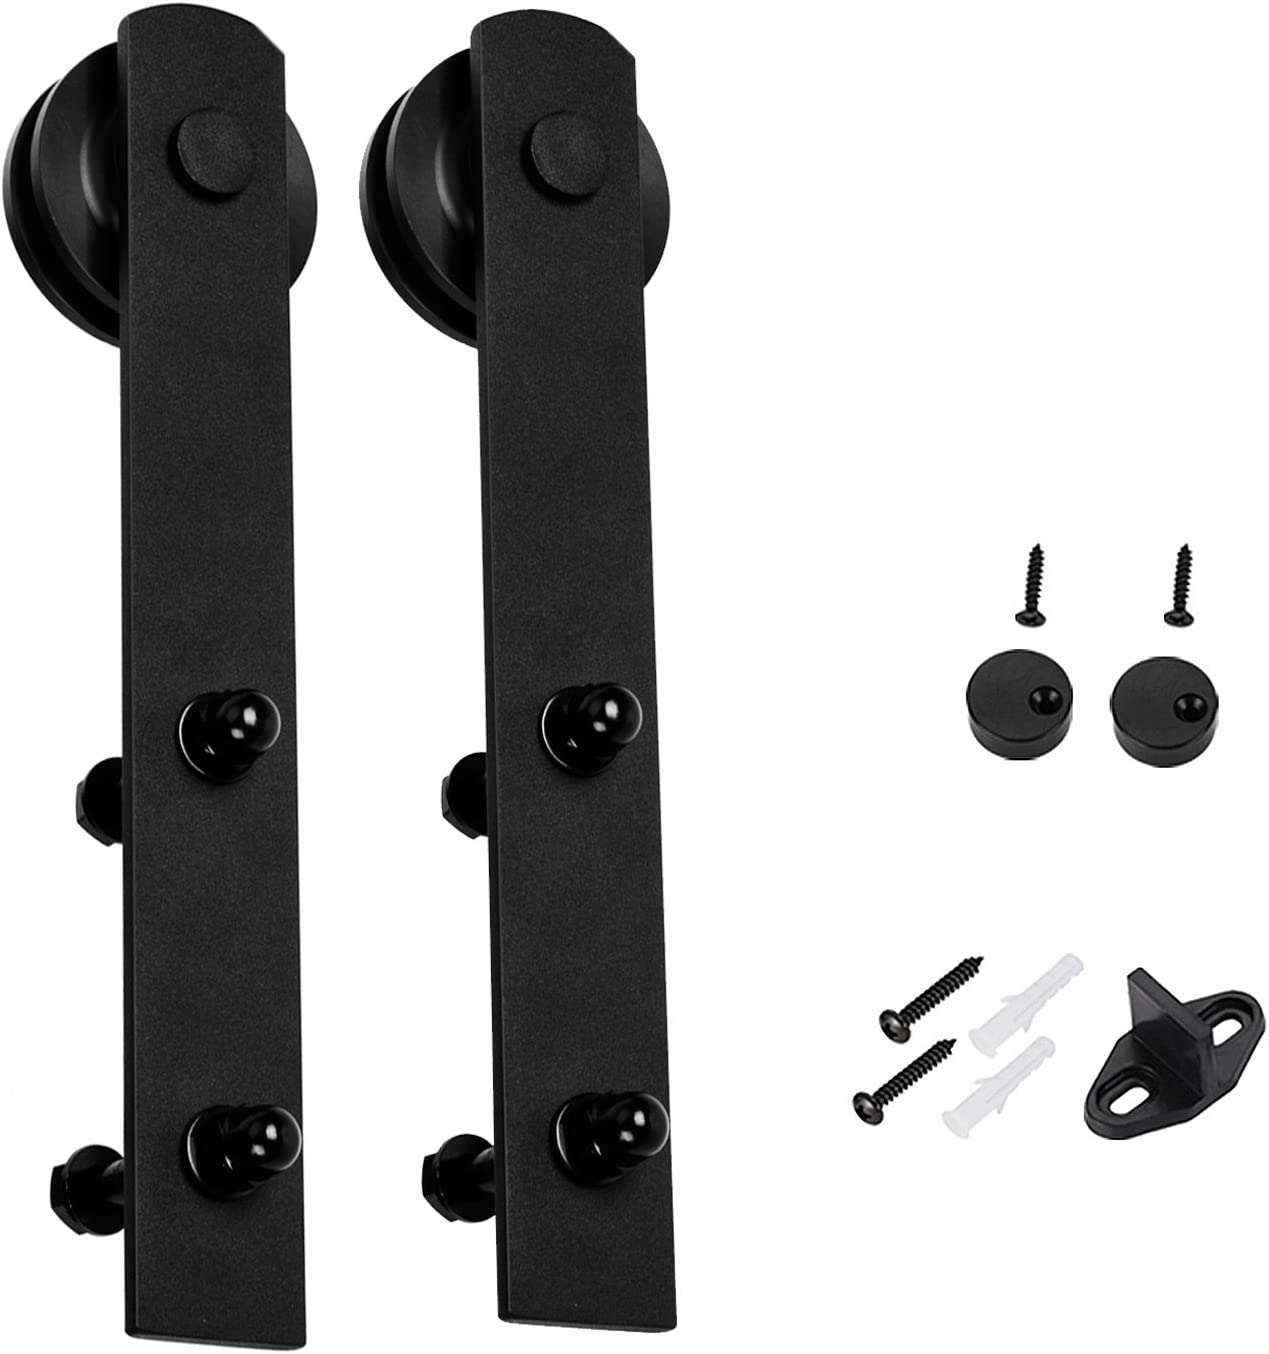 EaseLife 10 FT Heavy Duty Sliding Barn Door Hardware Track Kit,Ultra Hard Sturdy,Slide Smoothly Quietly,Easy Install,Fit up to 60 Wide Door 10FT Track Single Door Kit